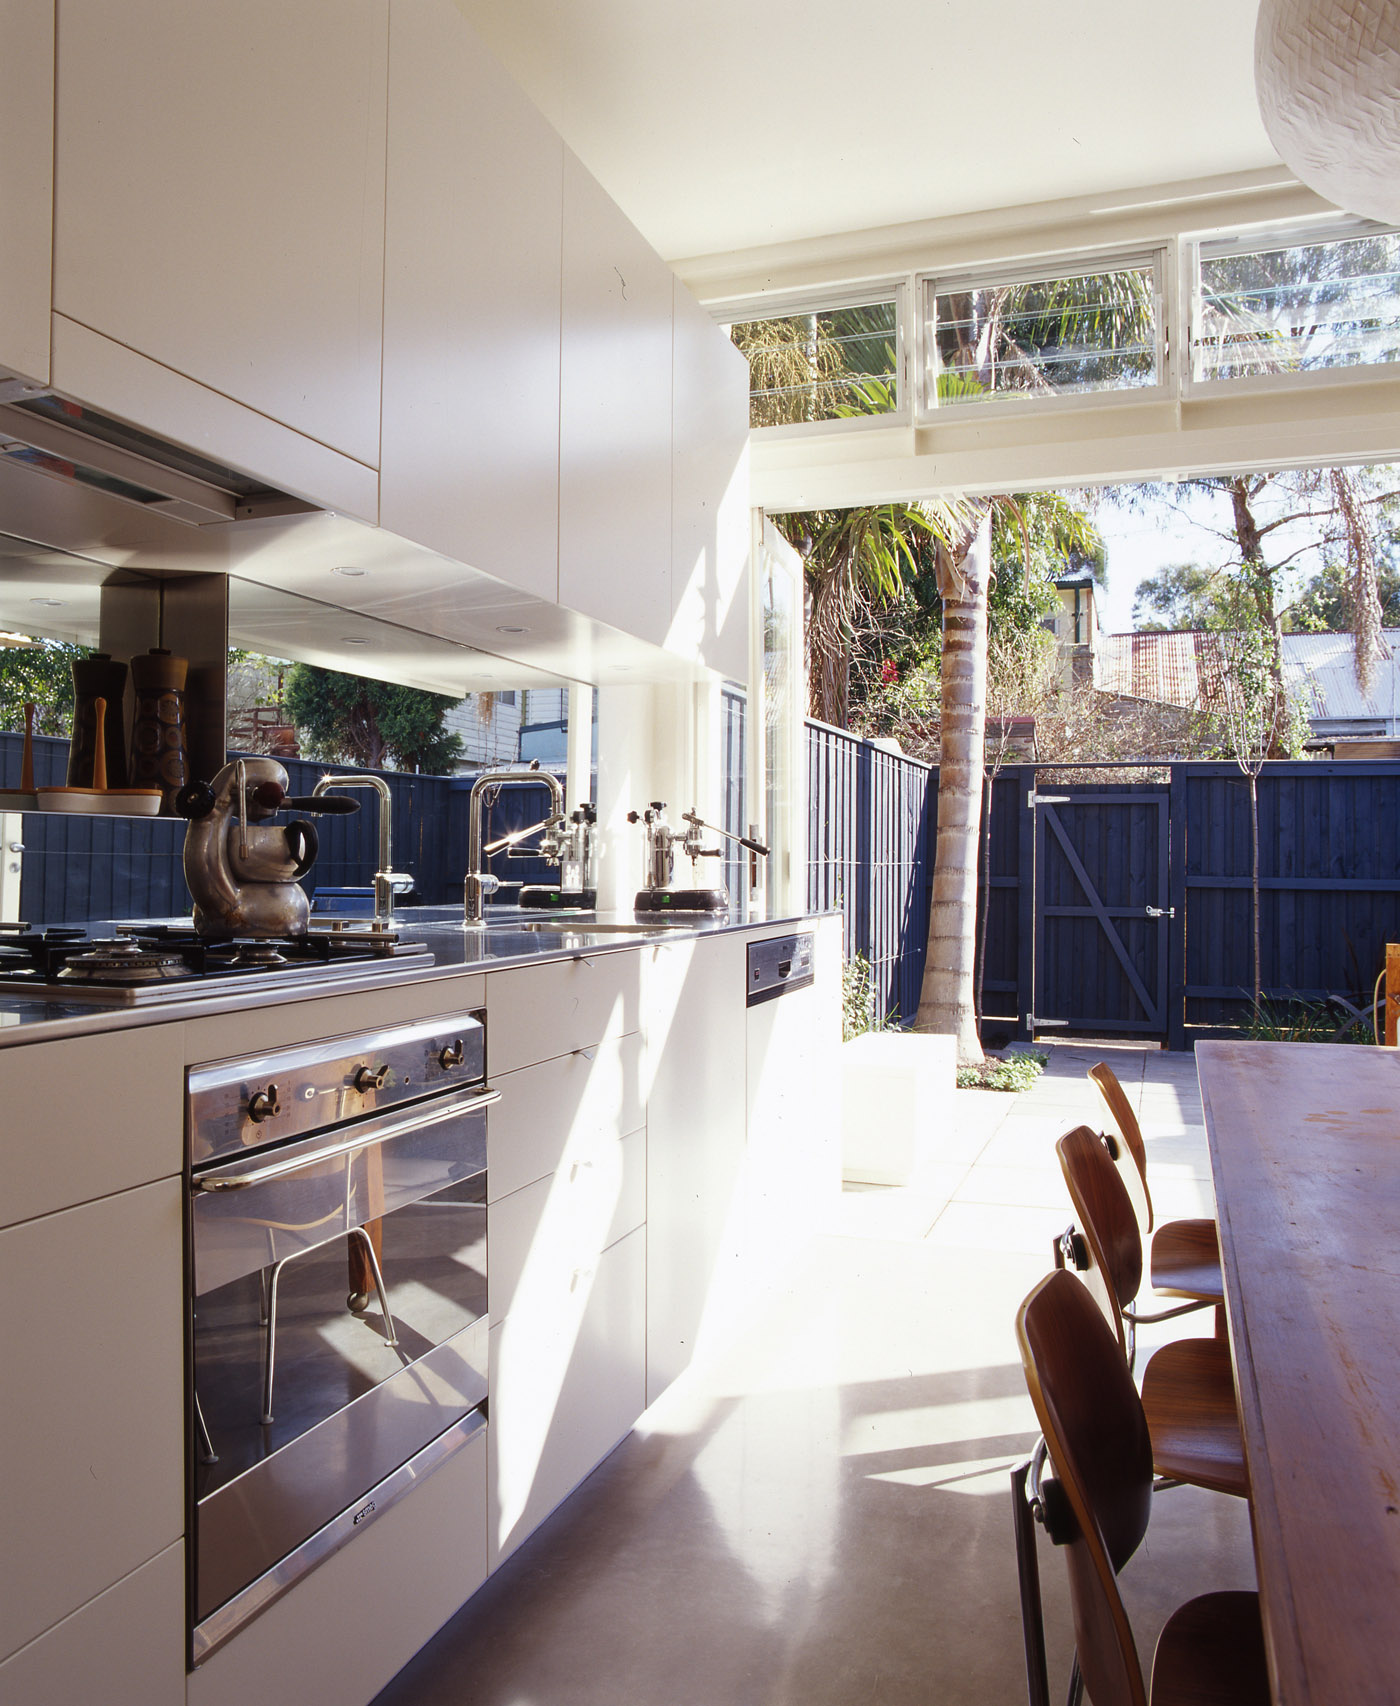 Wake Murphy House by Sydney award winning residential architecture office Sam Crawford Architects. Compact kitchen make use of reflective surfaces